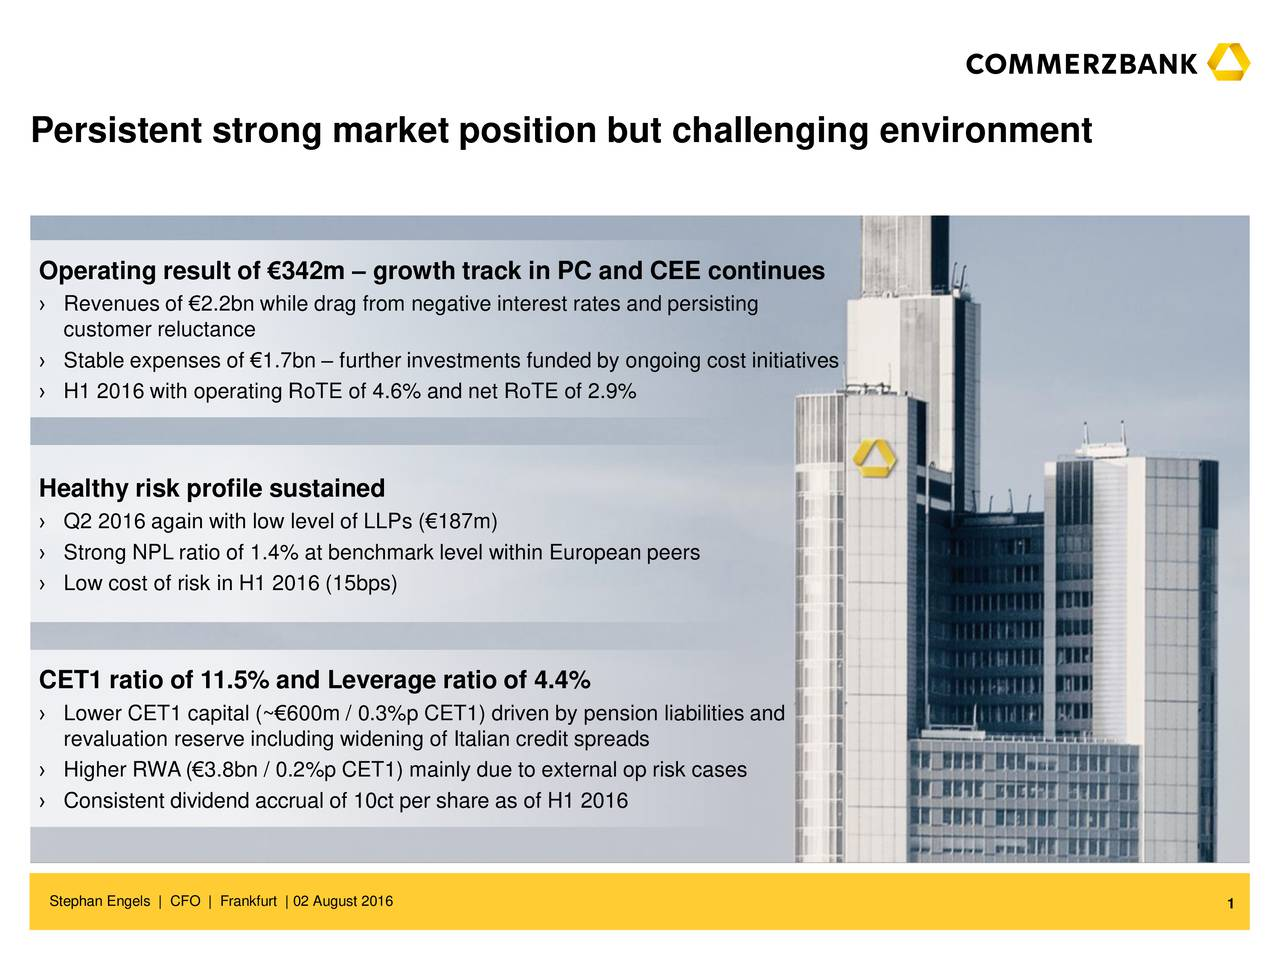 Operating result of 342m  growth track in PC and CEE continues Revenues of 2.2bn while drag from negative interest rates and persisting customer reluctance Stable expenses of 1.7bn  further investments funded by ongoing cost initiatives H1 2016 with operating RoTE of 4.6% and net RoTE of 2.9% Healthy risk profile sustained Q2 2016 again with low level of LLPs (187m) Strong NPL ratio of 1.4% at benchmark level within European peers Low cost of risk in H1 2016 (15bps) CET1 ratio of 11.5% and Leverage ratio of 4.4% Lower CET1 capital (~600m / 0.3%p CET1) driven by pension liabilities and revaluation reserve including widening of Italian credit spreads Higher RWA(3.8bn / 0.2%p CET1) mainly due to external op risk cases Consistent dividend accrual of 10ct per share as of H1 2016 Stephan Engels | CFO | Frankfurt | 02 August 2016 1